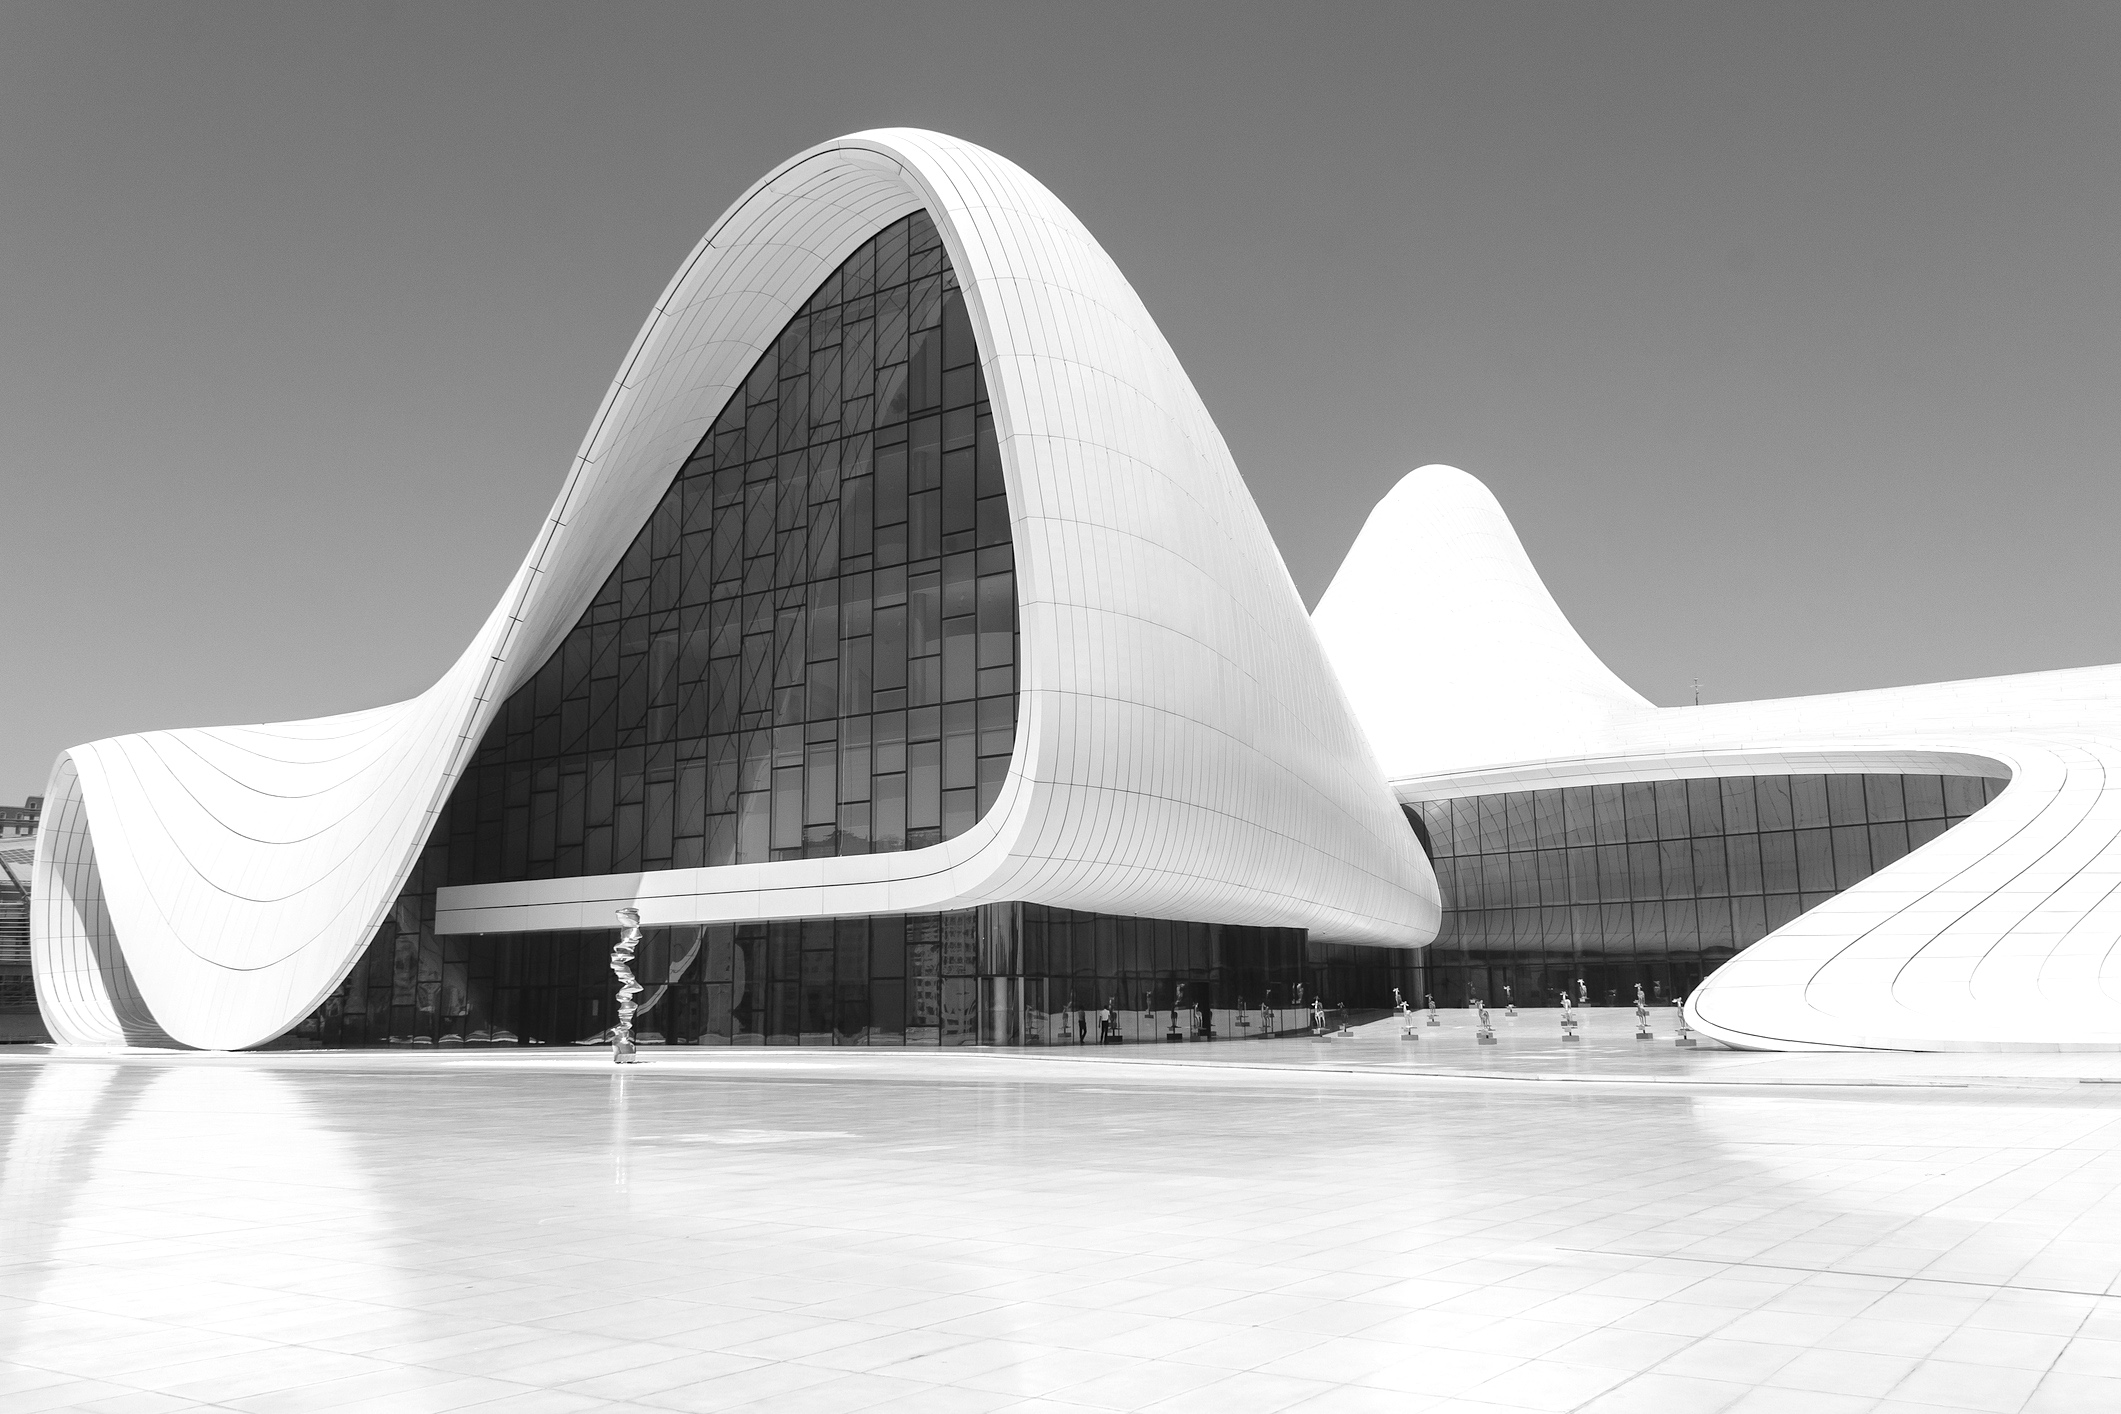 The Haydar Aliyev Centre, designed by Zaha Hadid